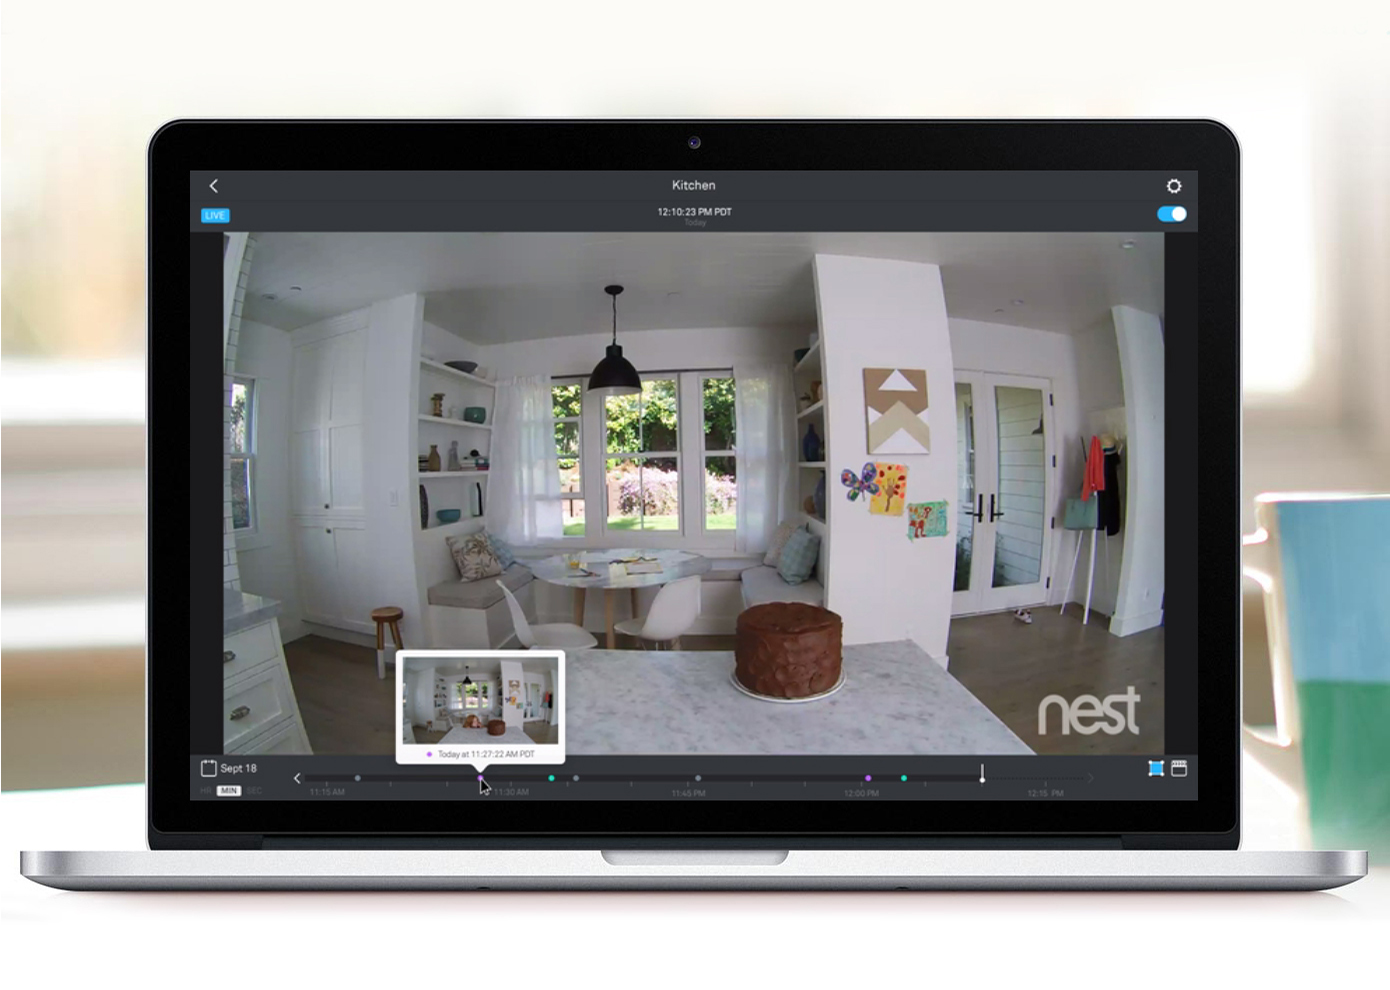 Camera Exterieur Home By Sfr Say Hello To Nest Cam Nest